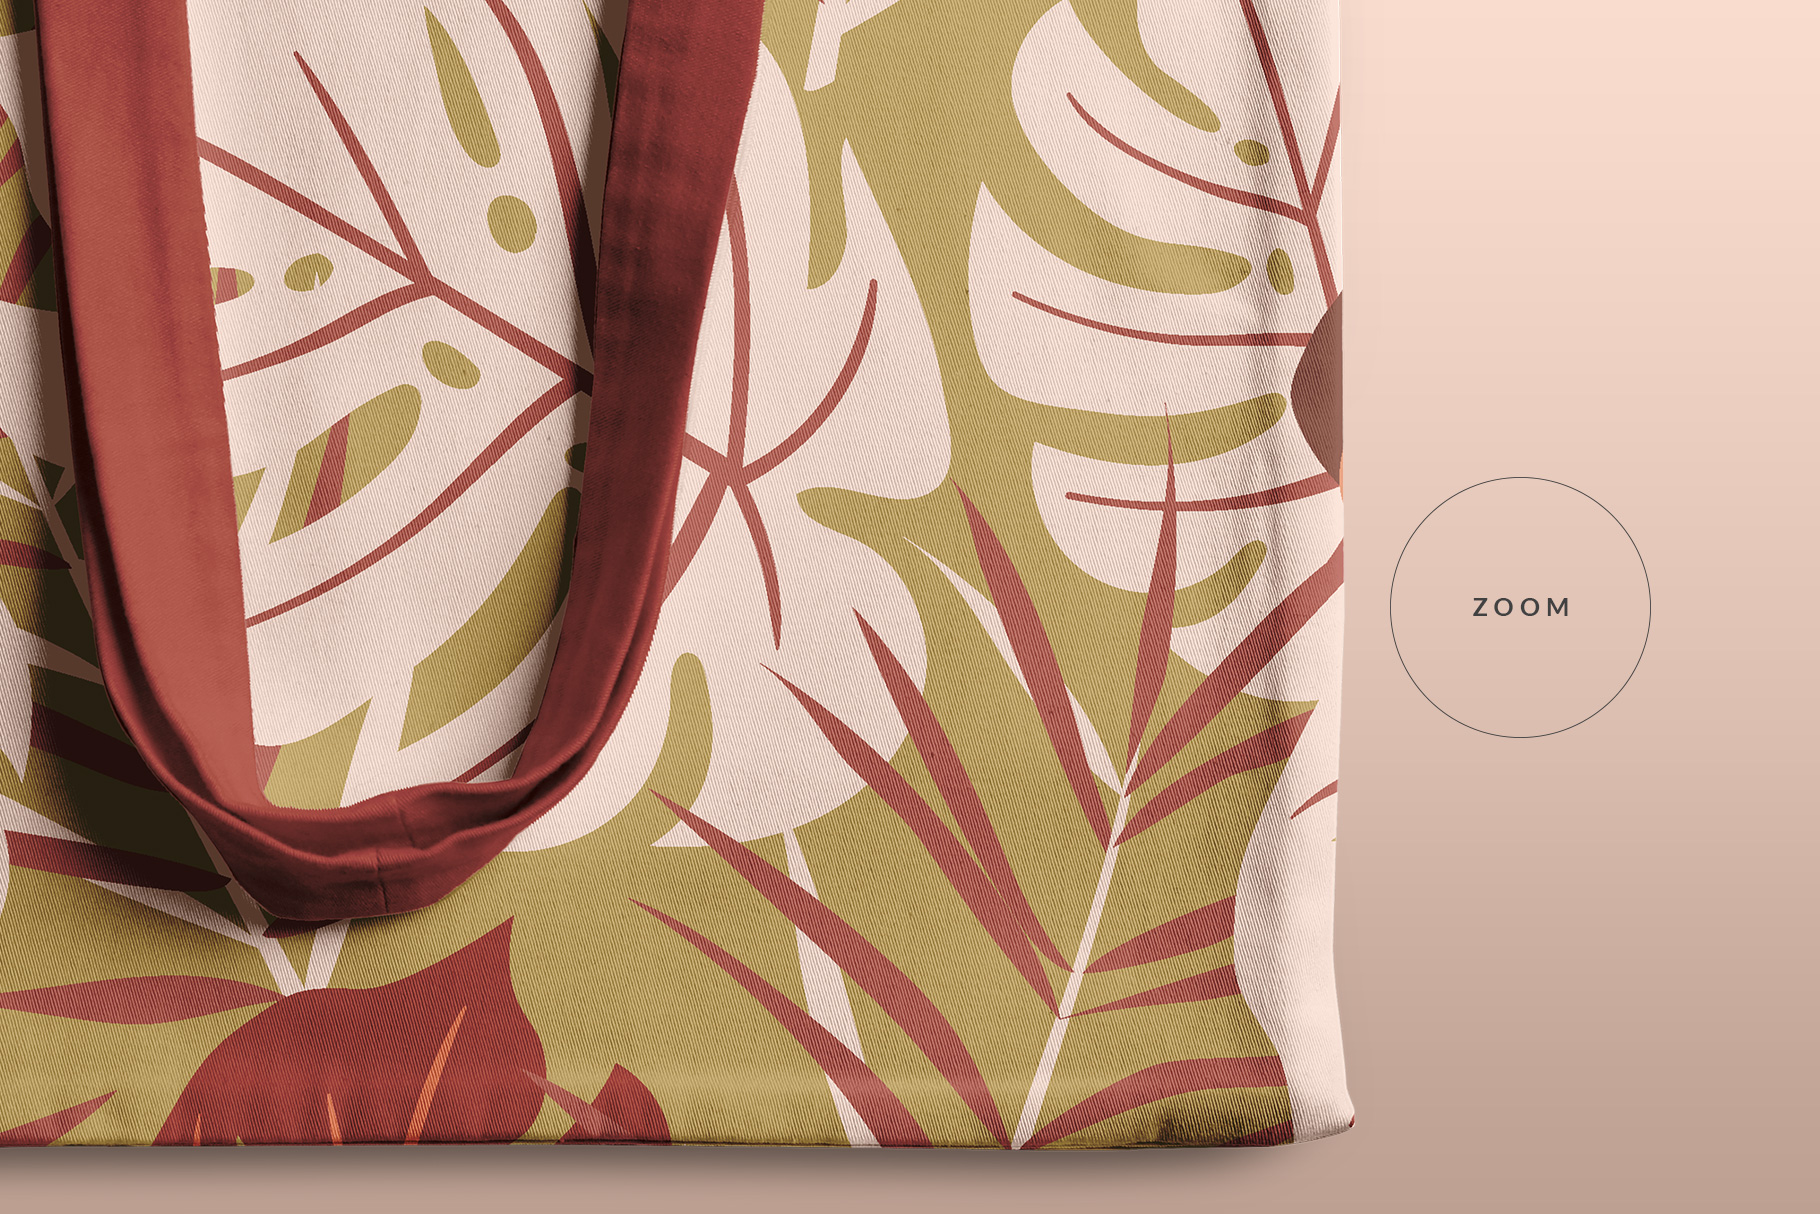 zoomed in image of the top view reusable cotton tote bag mockup